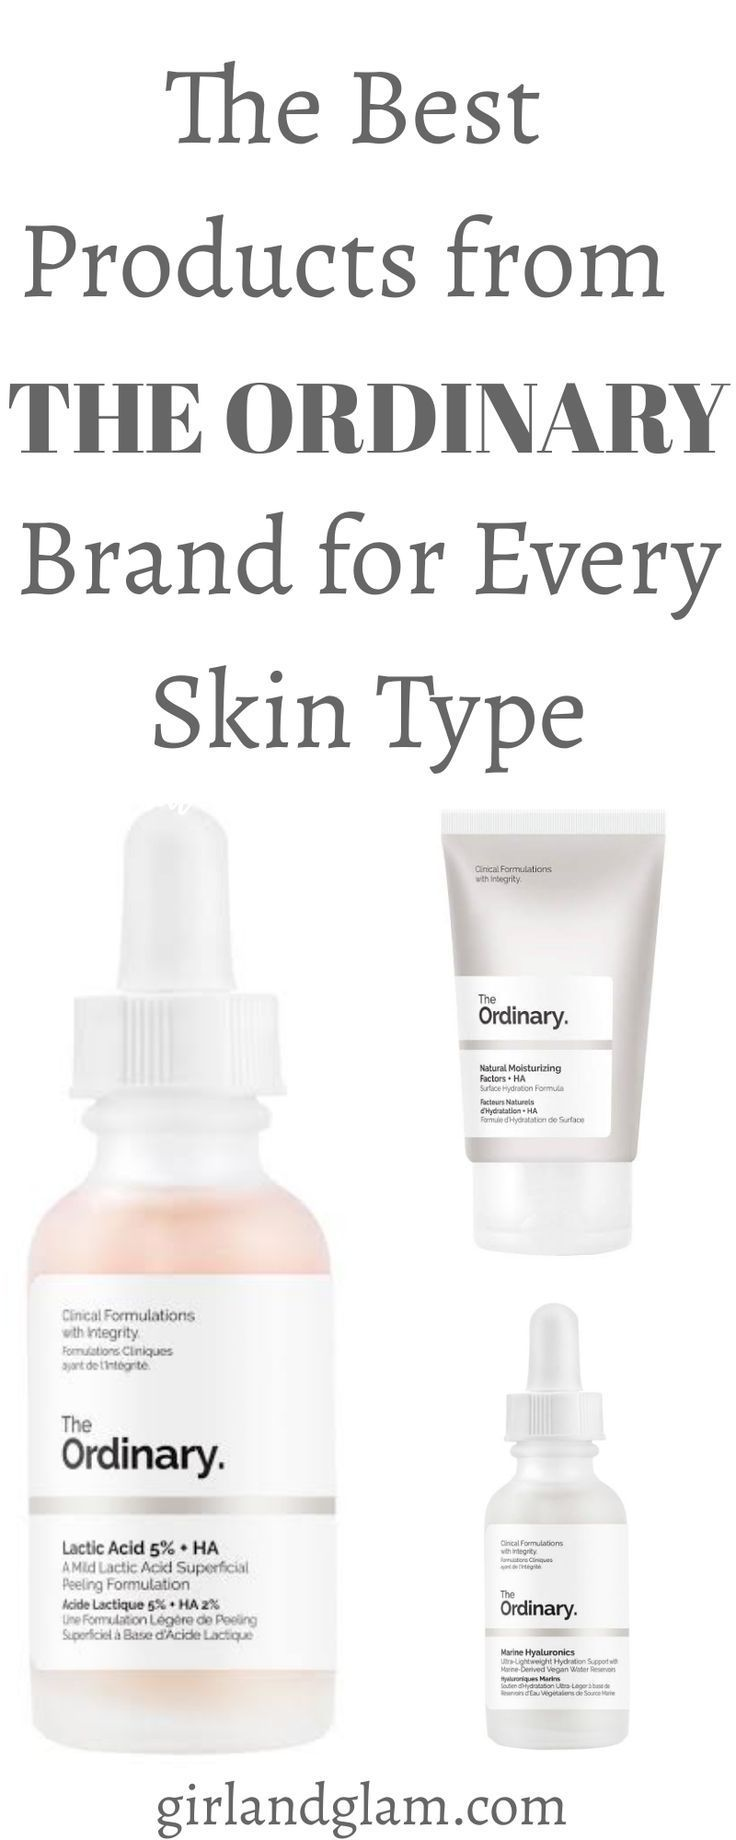 Best Products From The Ordinary Skincare Brand In 2020 The Ordinary Skincare Skin Care Skin Types